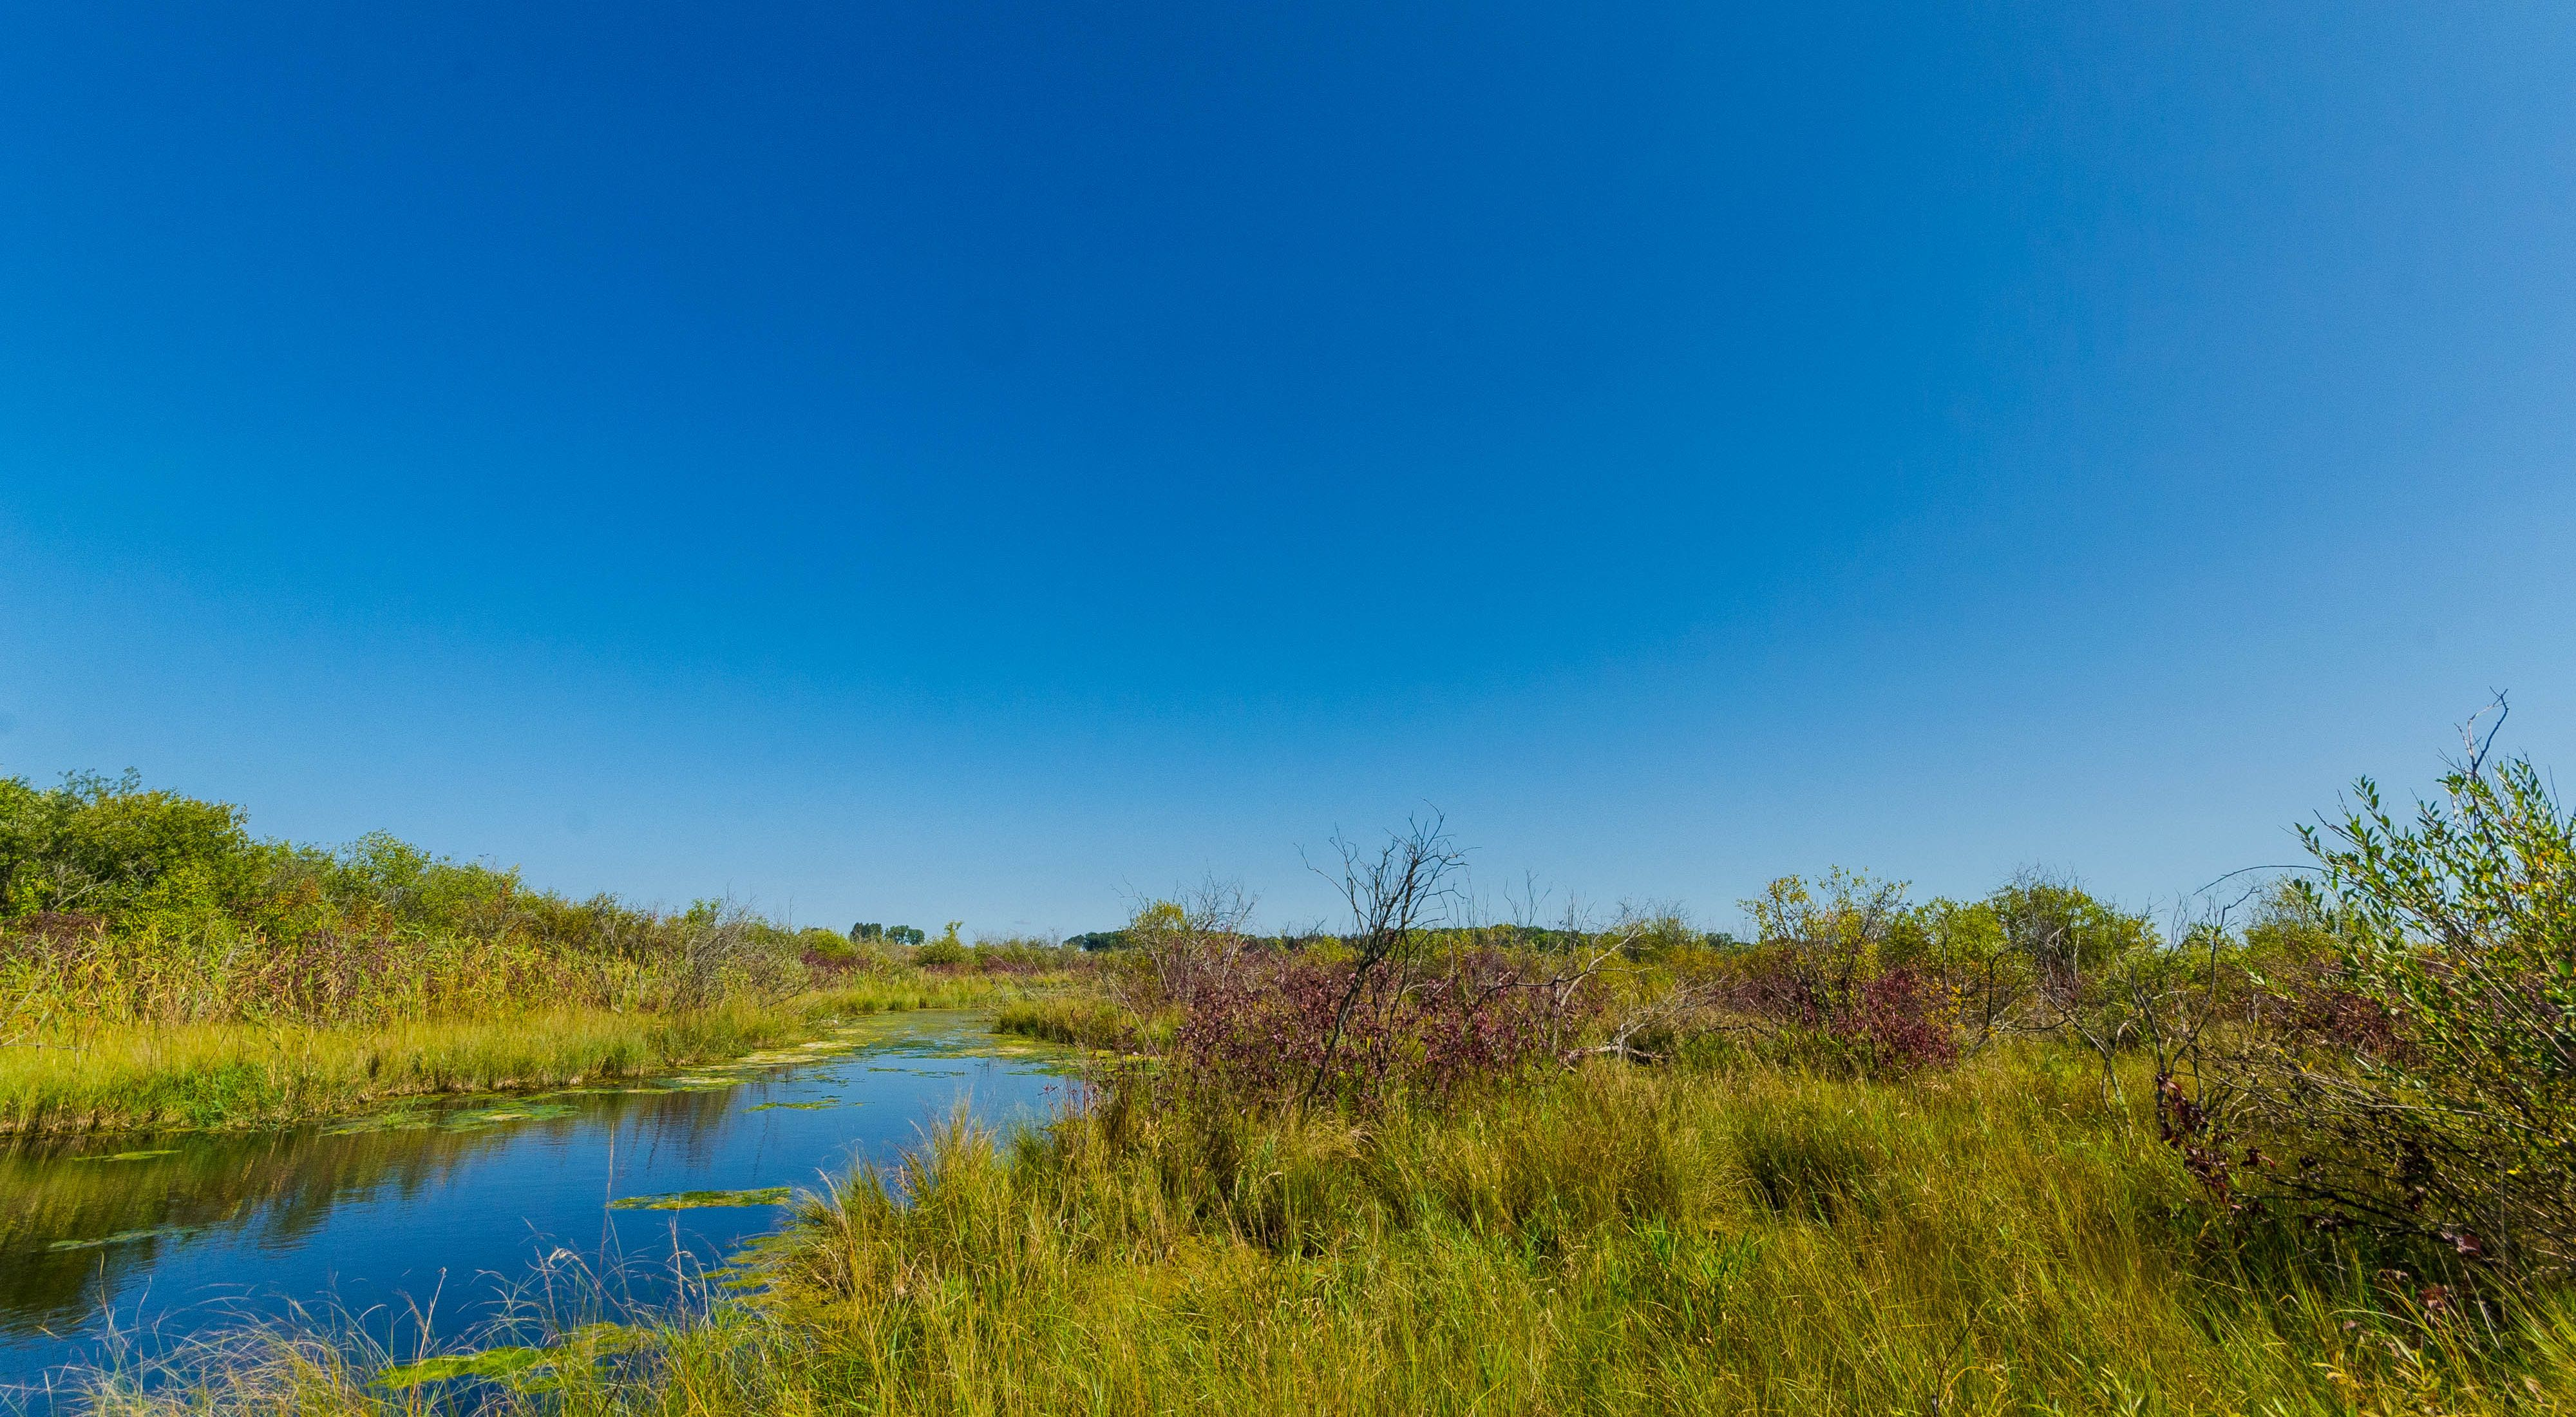 small stream meanders through green wetlands under a bright blue sky during summer